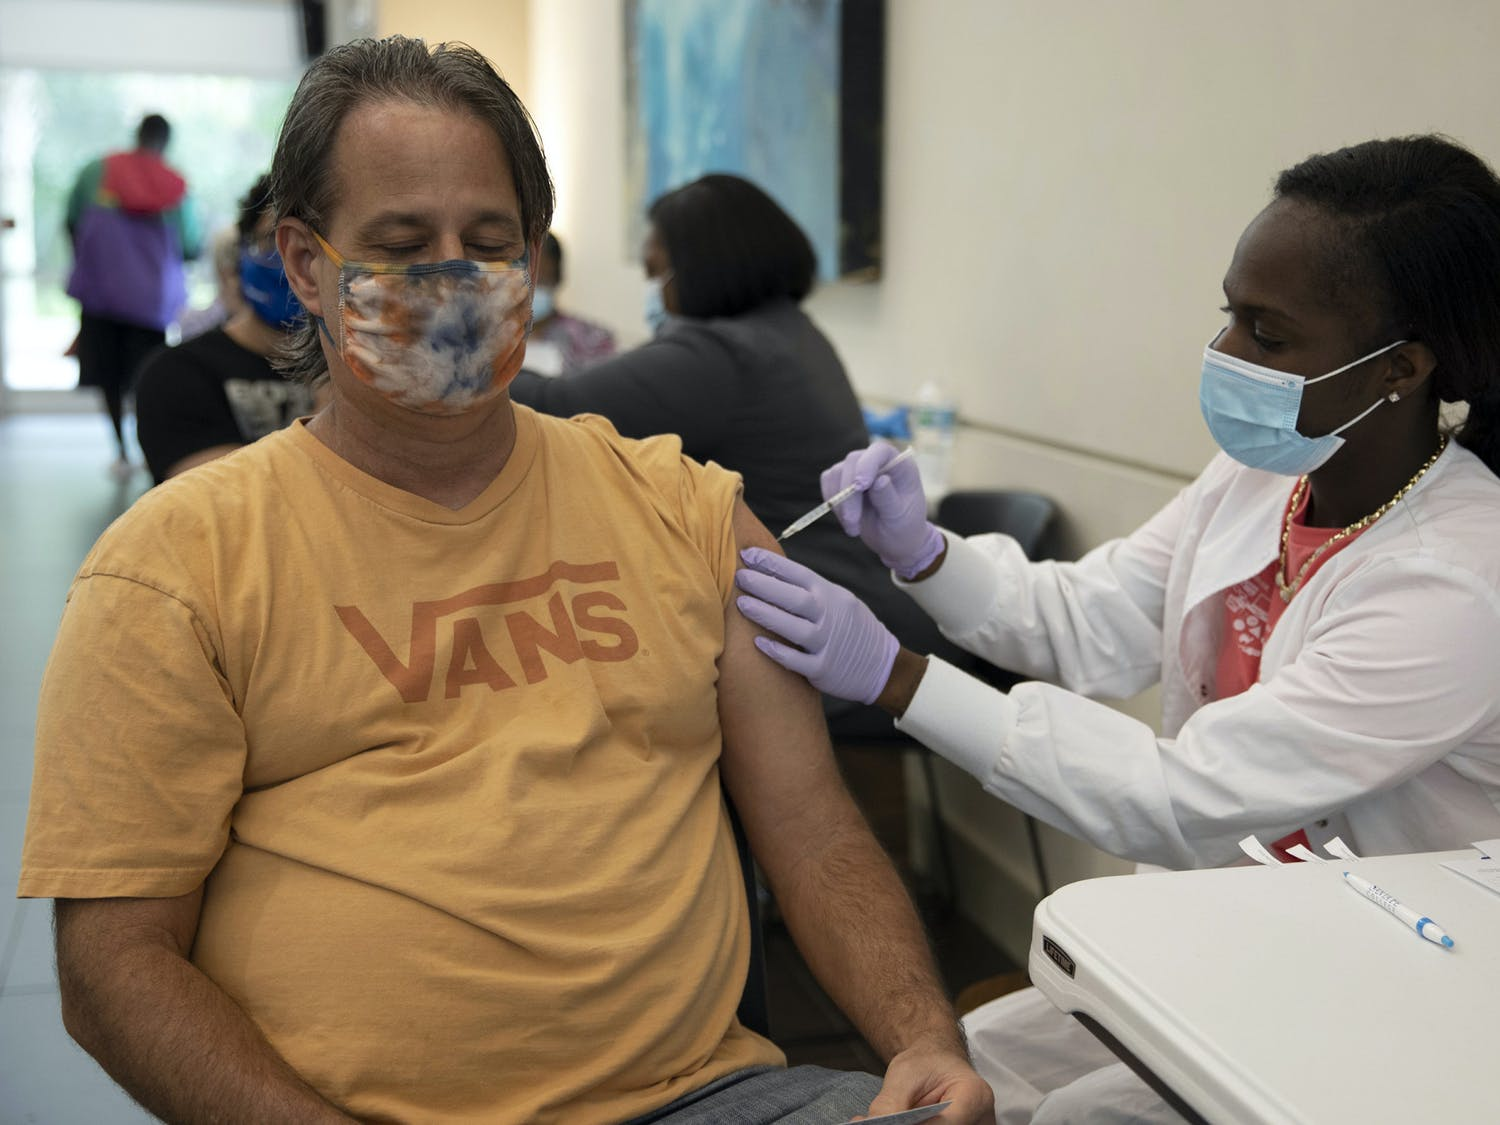 Scott Murphey, 52, a Santa Fe college math department professor, gets his second dose of the COVID-19 vaccine Thursday morning at Santa Fe College Jackson N. Sasser Fine Arts Hall, Gainesville, Fla., May 13, 2021.